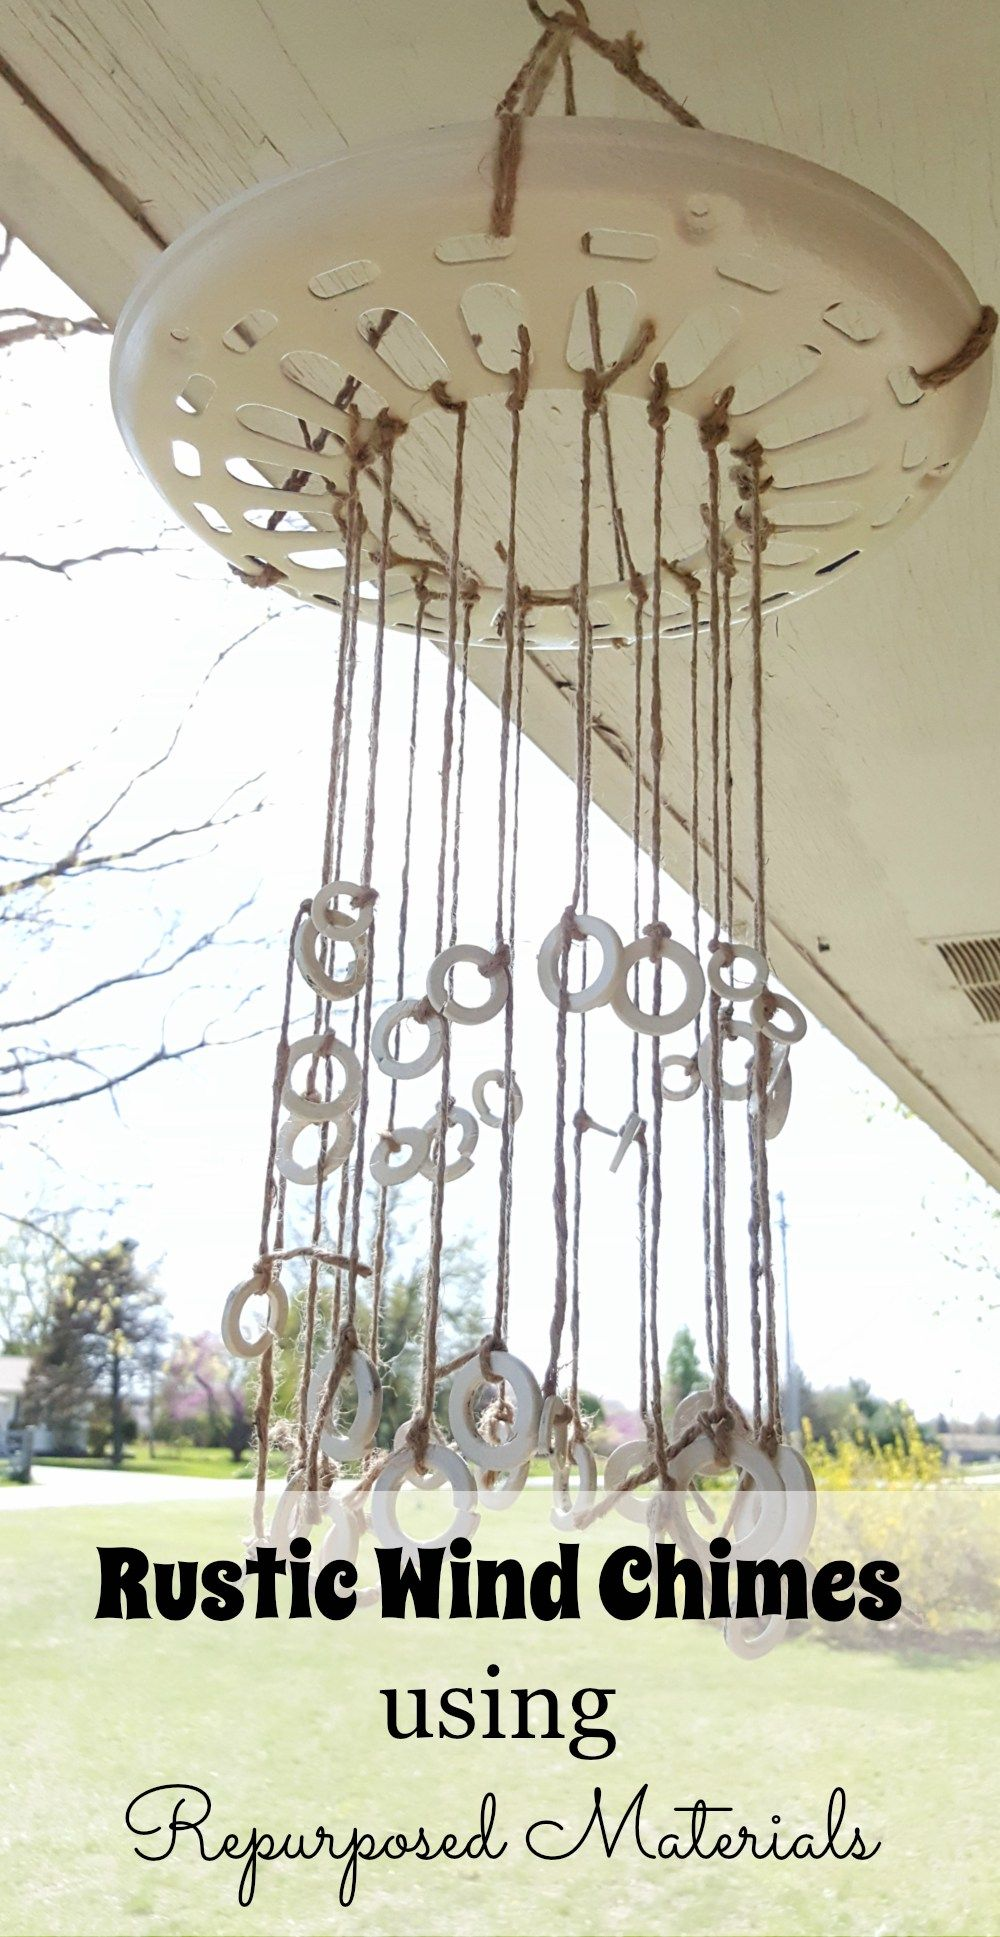 DIY Rustic Wind Chimes using Ceiling Fan Cover and Washers is part of Upcycled Crafts Reuse Wind Chimes - This DIY rustic wind chimes is so easy to make, using a ceiling fan cover, washers, jute twine, and paint, and gives off a sweet sound  How to Make a Wind Chime using Repurposed Materials